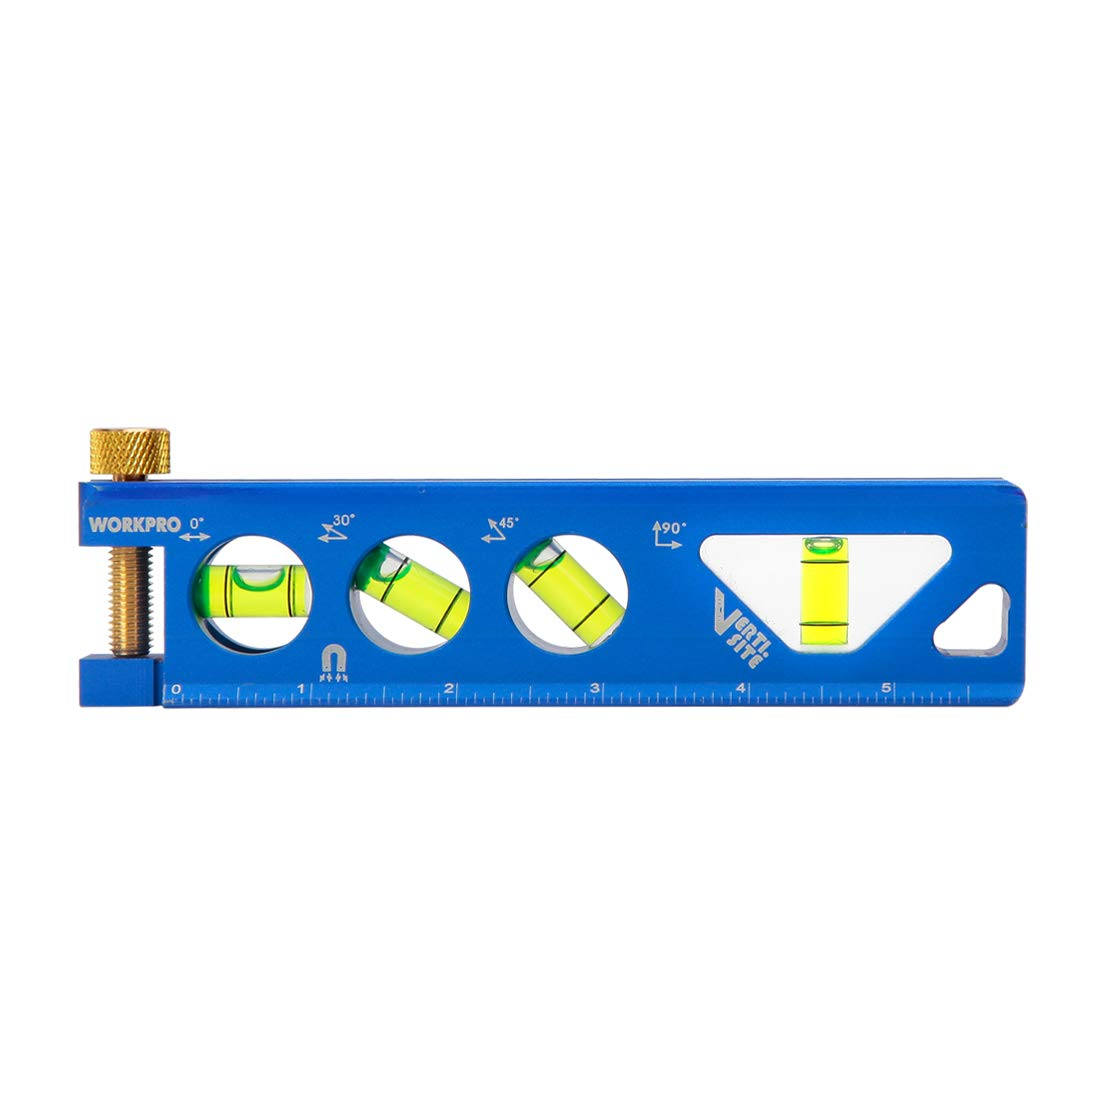 WORKPRO Torpedo Level,Magnetic, Verti. Site 4 Vial for Conduit Bending,Aluminum Alloy Construction,6.5-inch